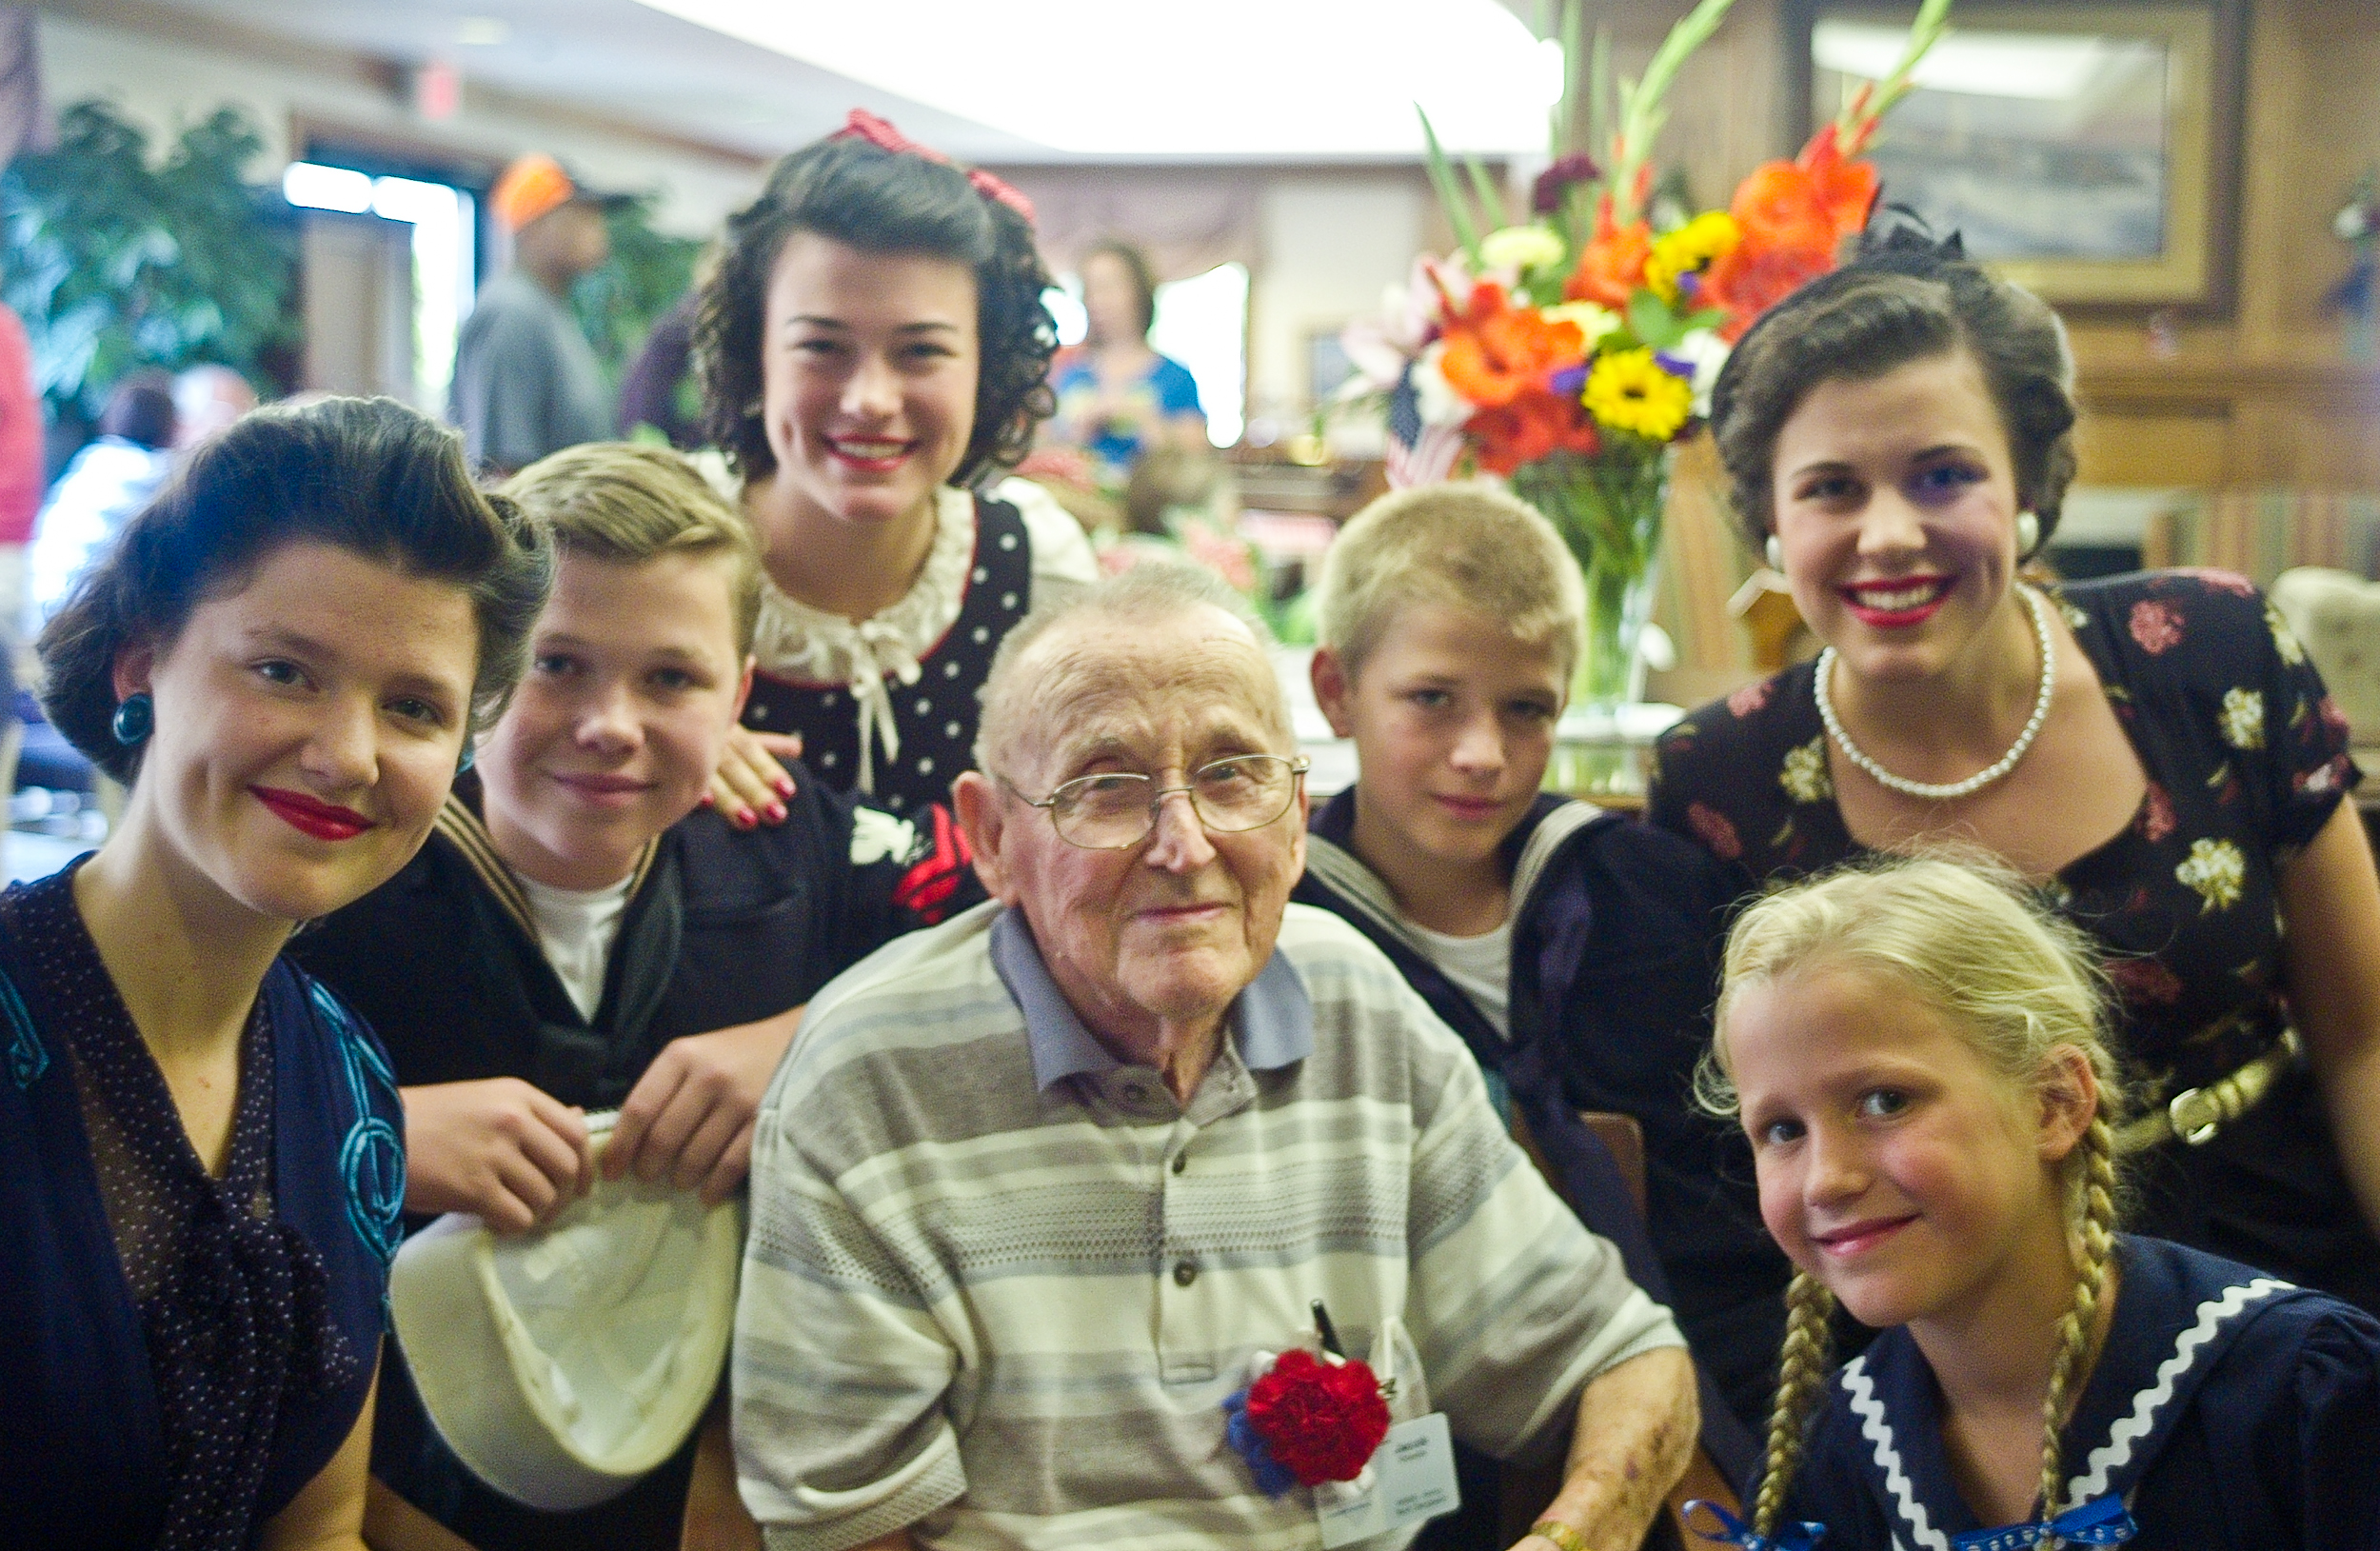 Mr. JacobKesiatie was stationed just a little ways from us at the San Marcos Military Hospital in Texas throughout the war. He said his favorite thing about Texas was the Bluebonnets. He had never seen anything like them before.